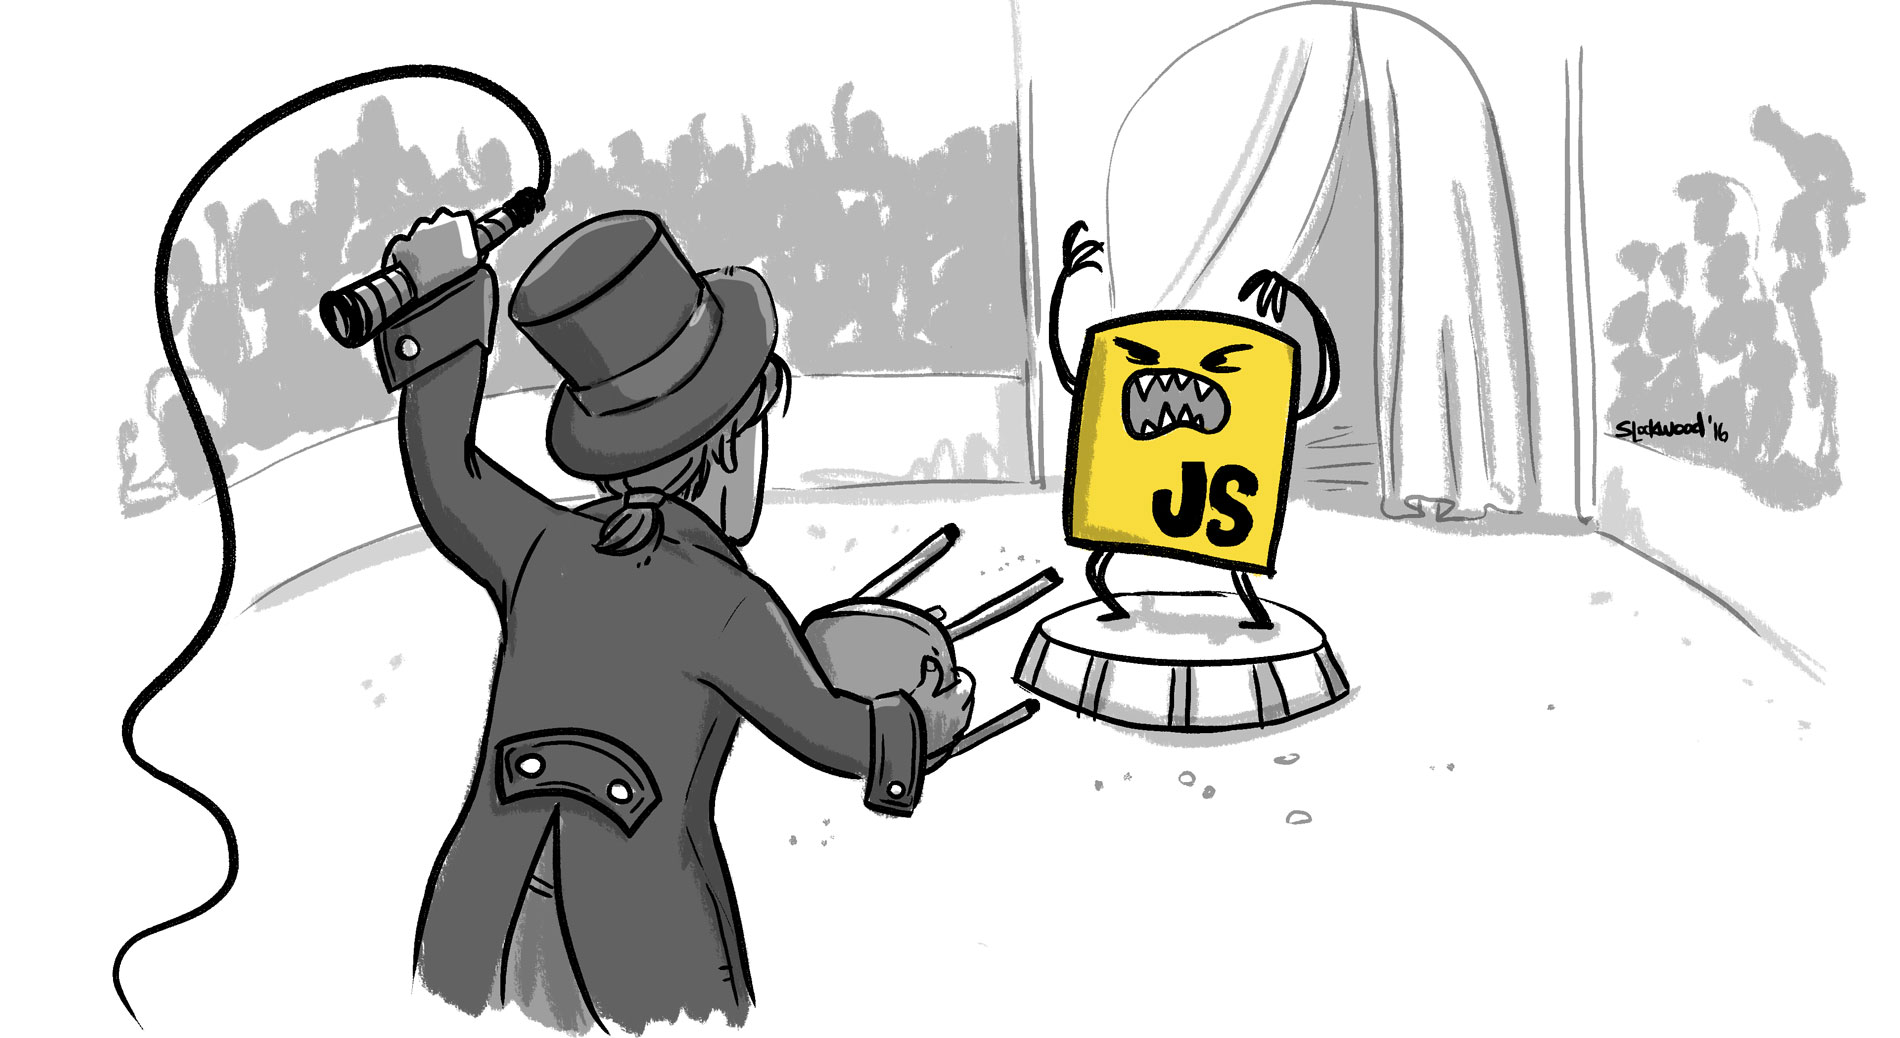 An illustration of a carnival barker holding back the JavaScript logo